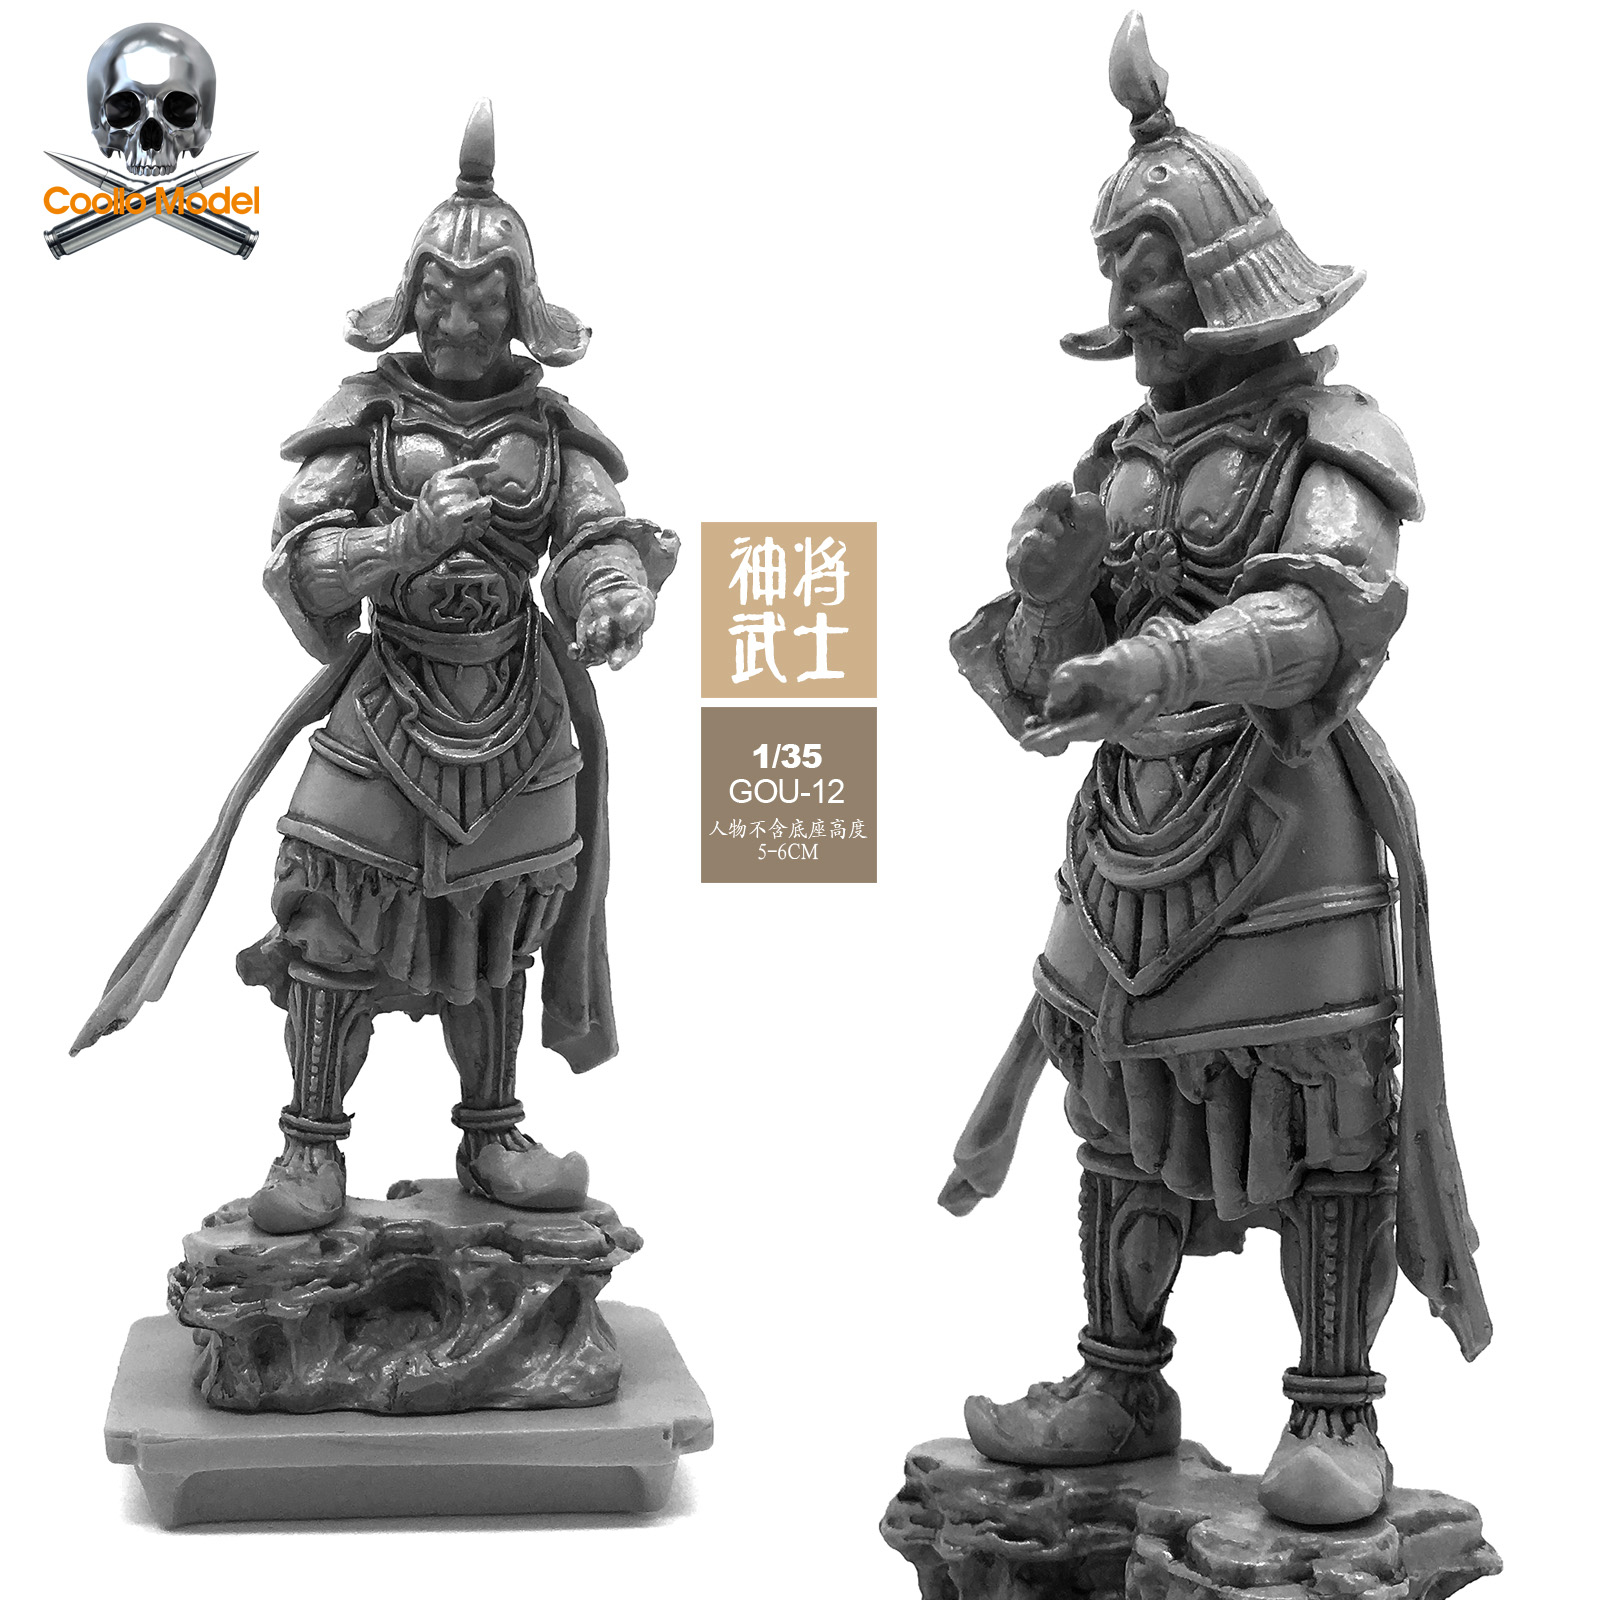 1/35 Ancient Warrior A with Base Resin Warrior Gou-12a